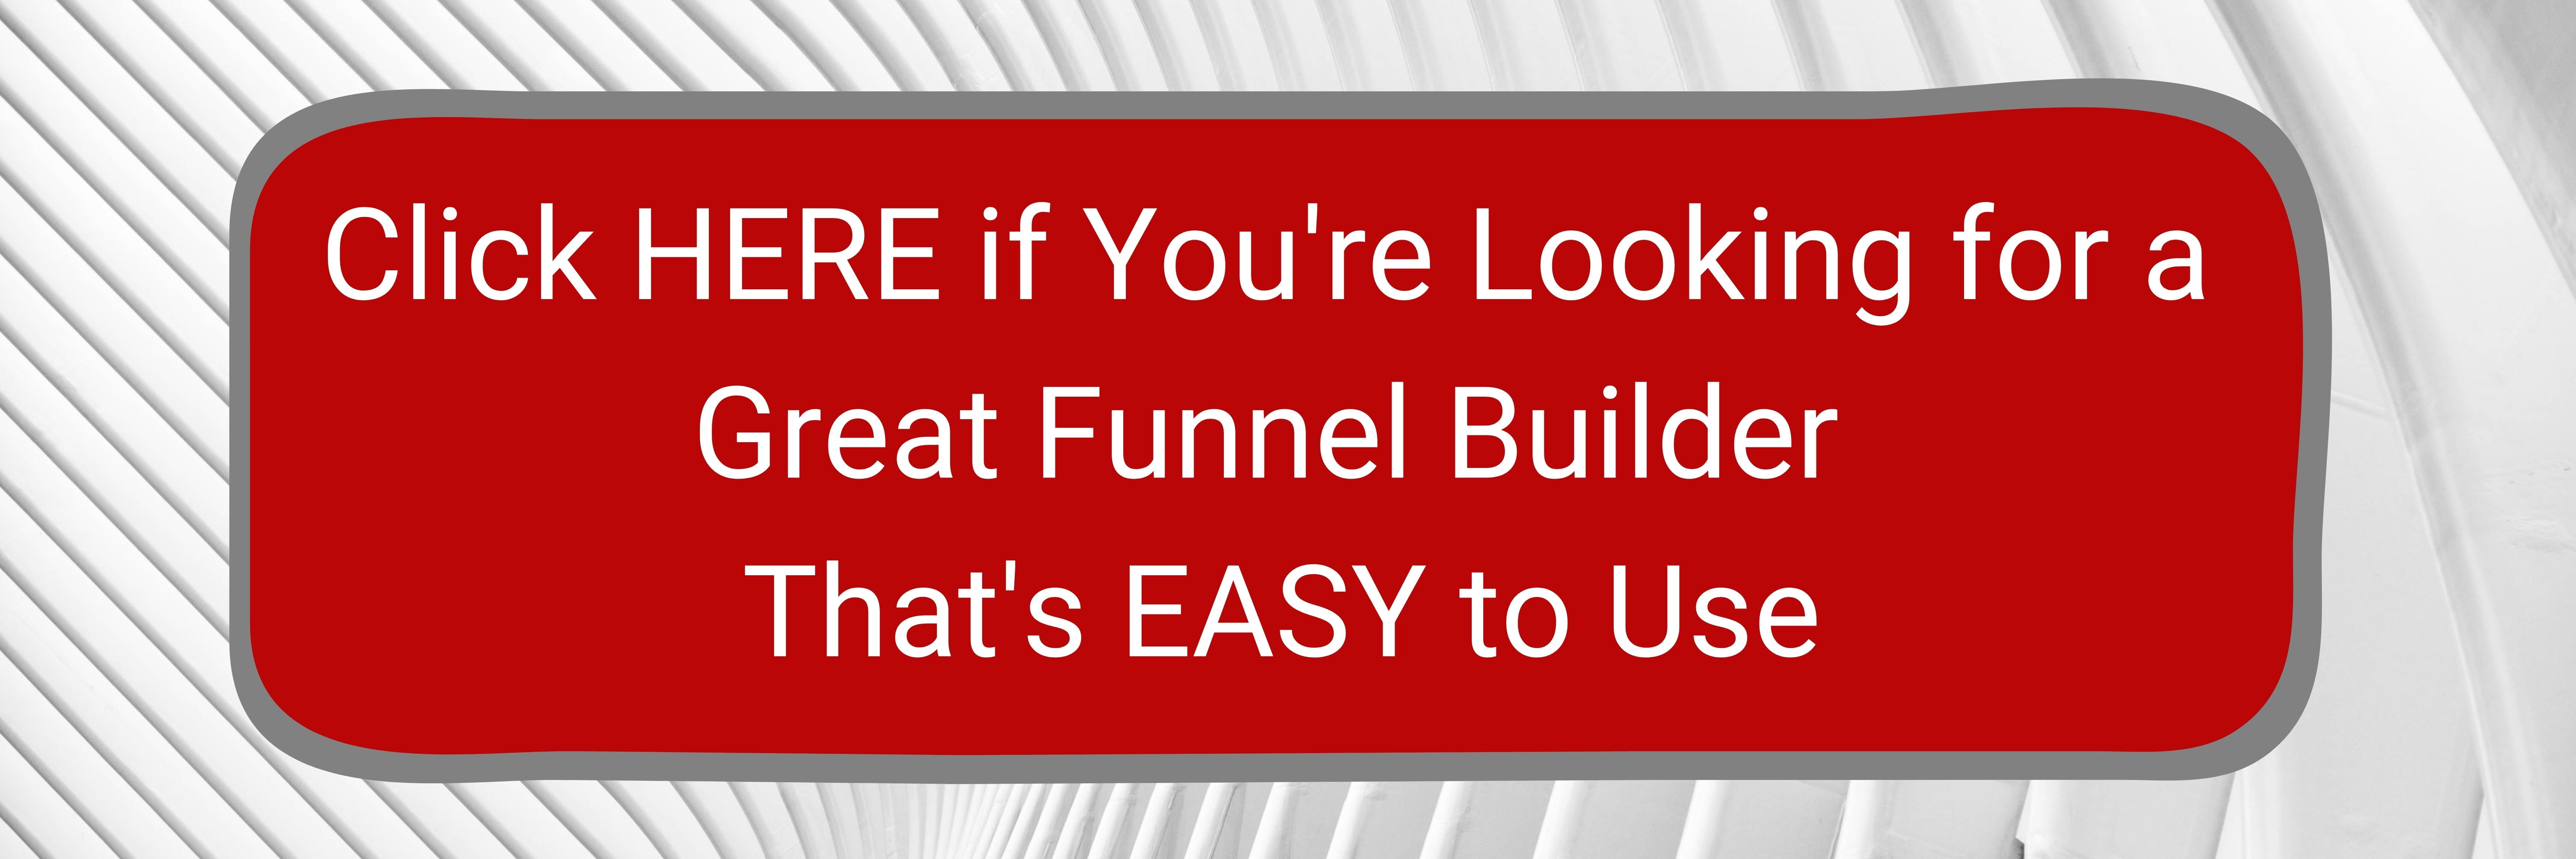 How To Change Your YouTube URL - Funnel Builder Banner